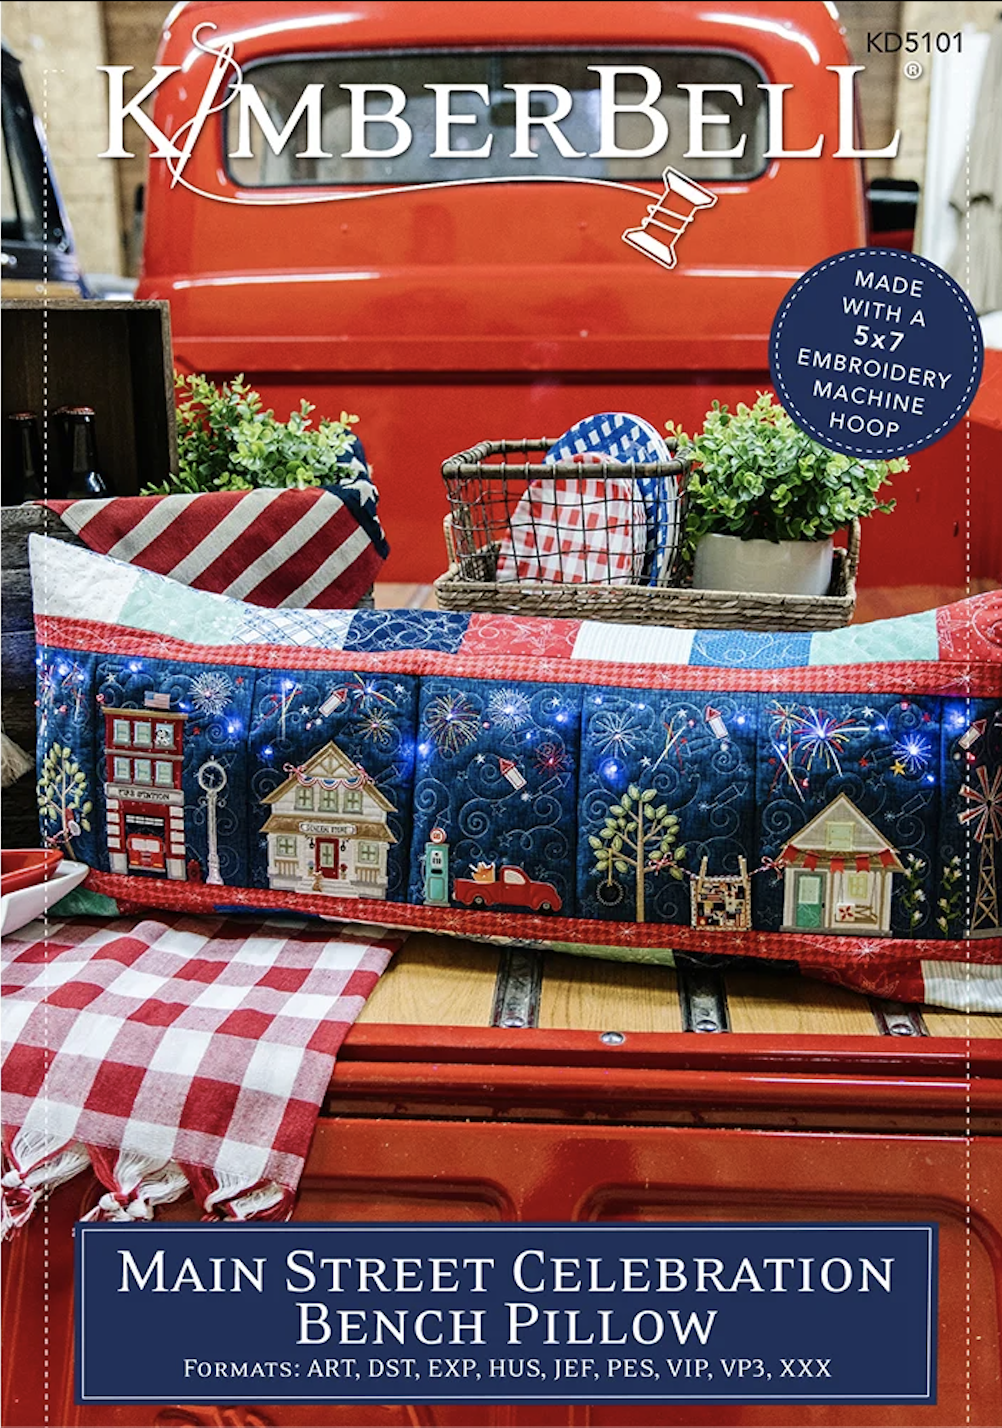 Main Street Bench Pillow Sewing OR Embroidery Design